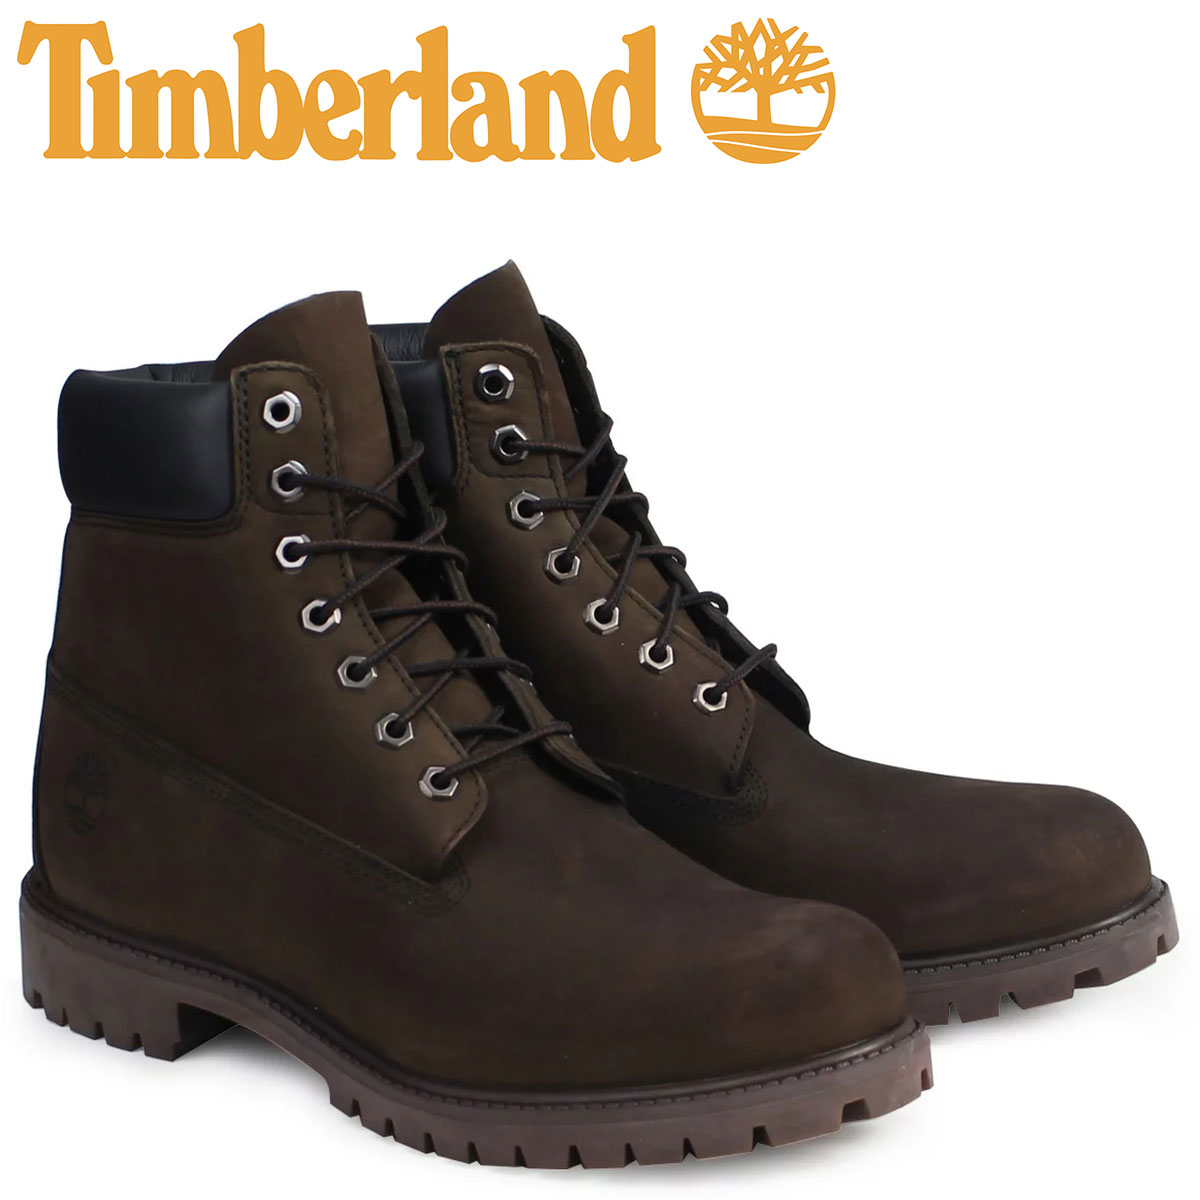 ad83cb46c6ba Whats up Sports  Timberland Timberland 6 inch premium waterproof ...